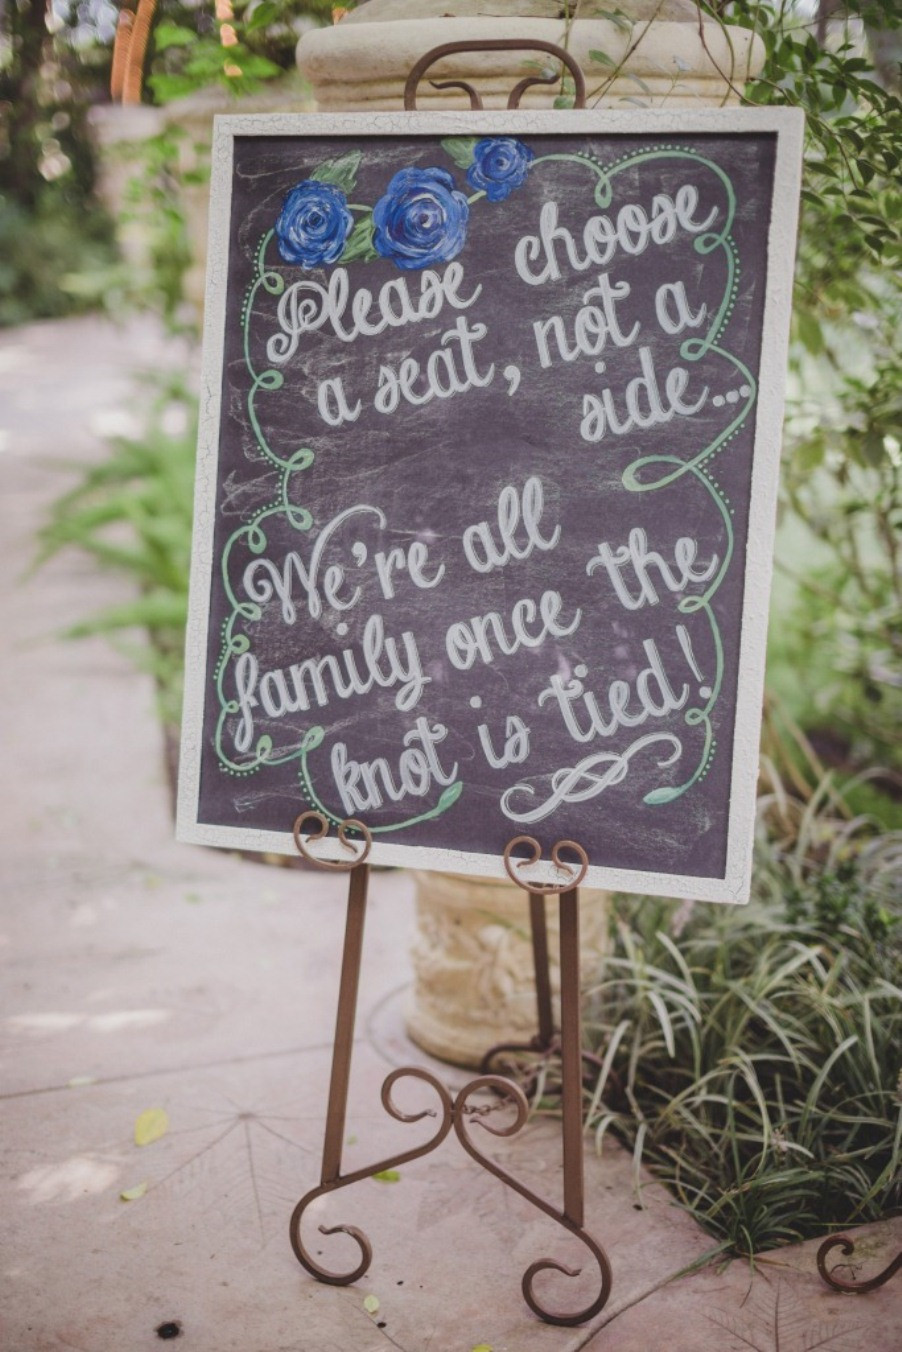 Best ideas about DIY Wedding Signs . Save or Pin DIY Chalkboard Wedding Signs A Simple Hack Miss Bizi Bee Now.